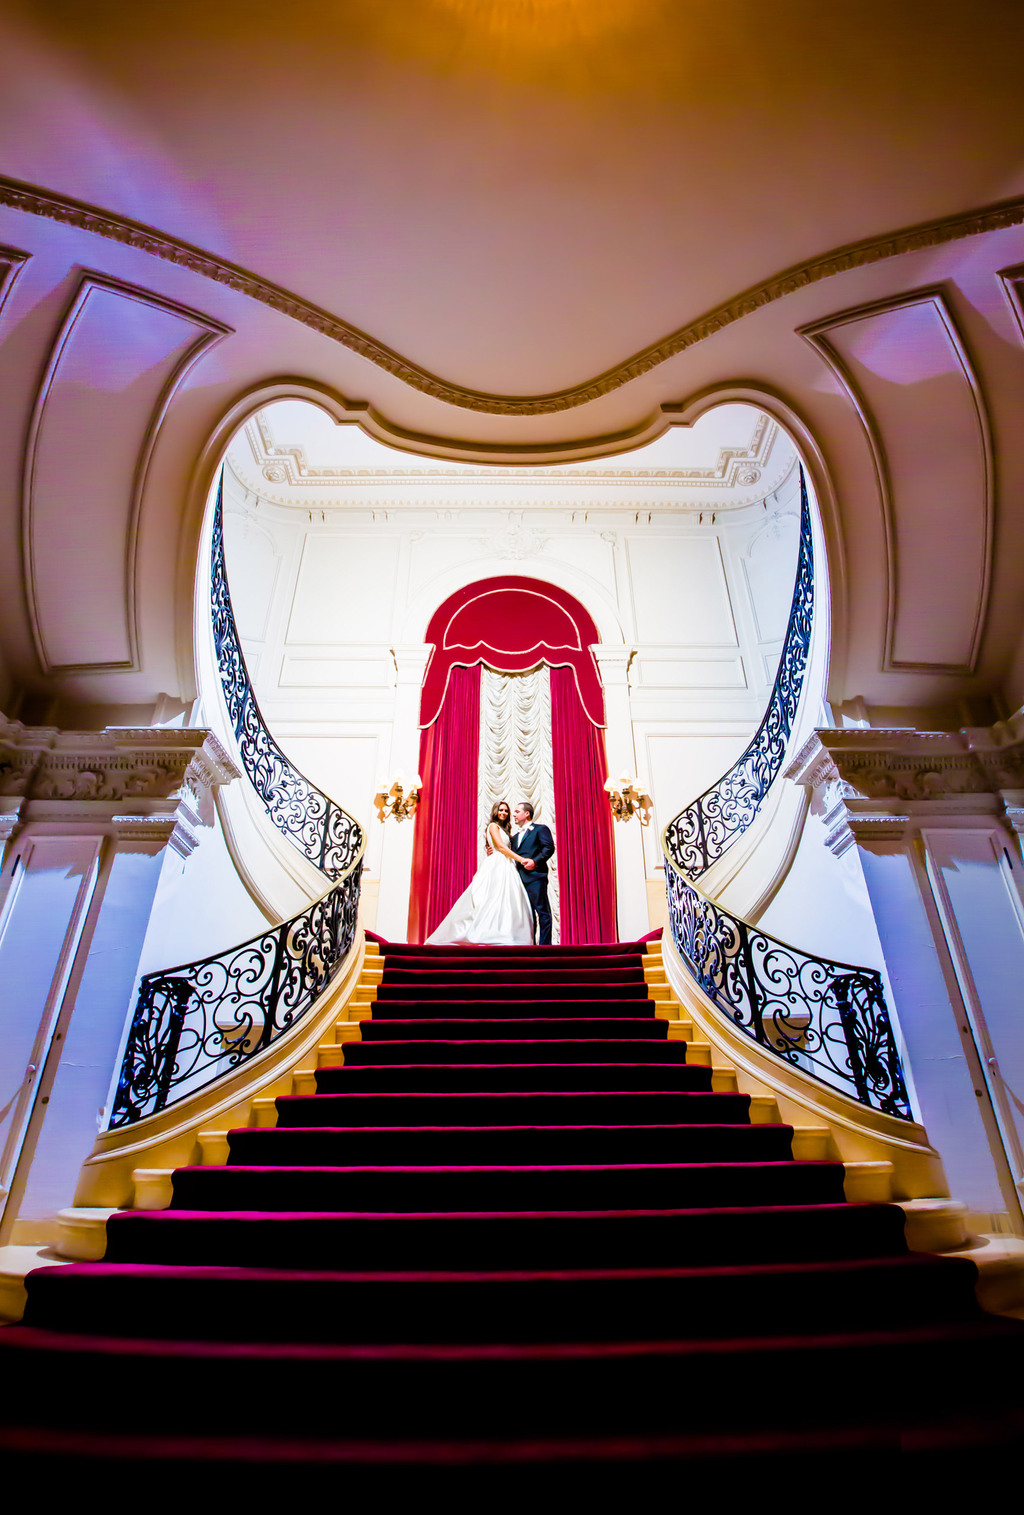 Rosecliff_mansion_wedding_photography.full